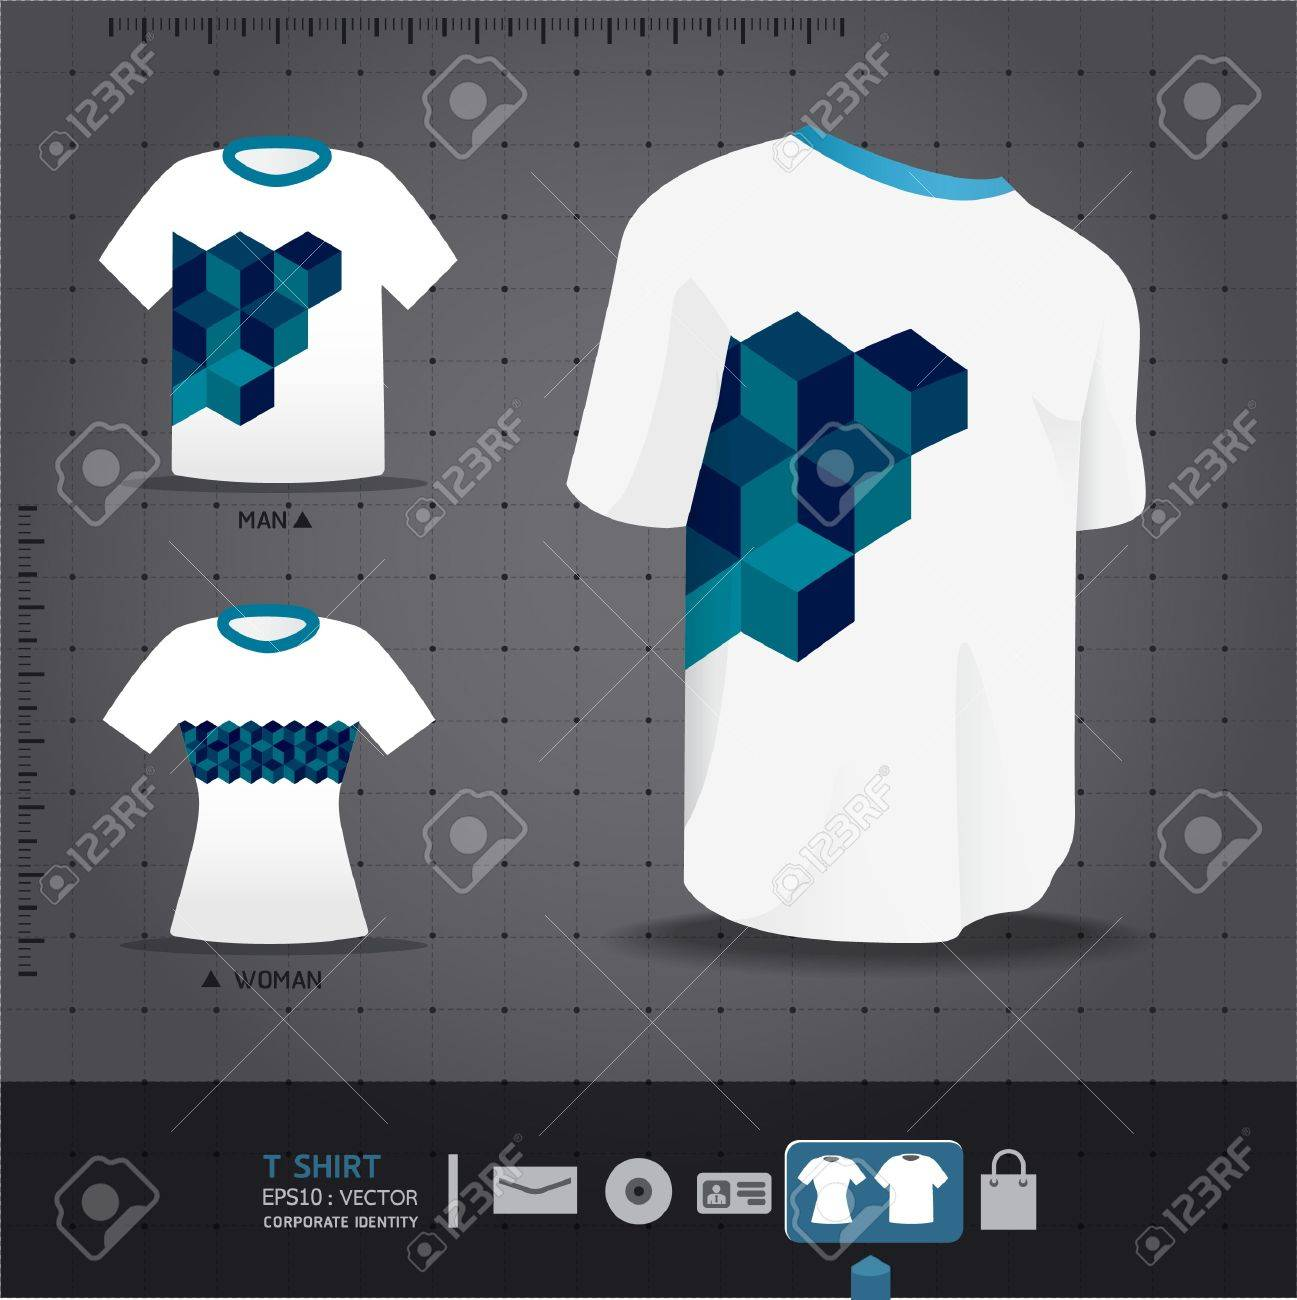 Shirt design business